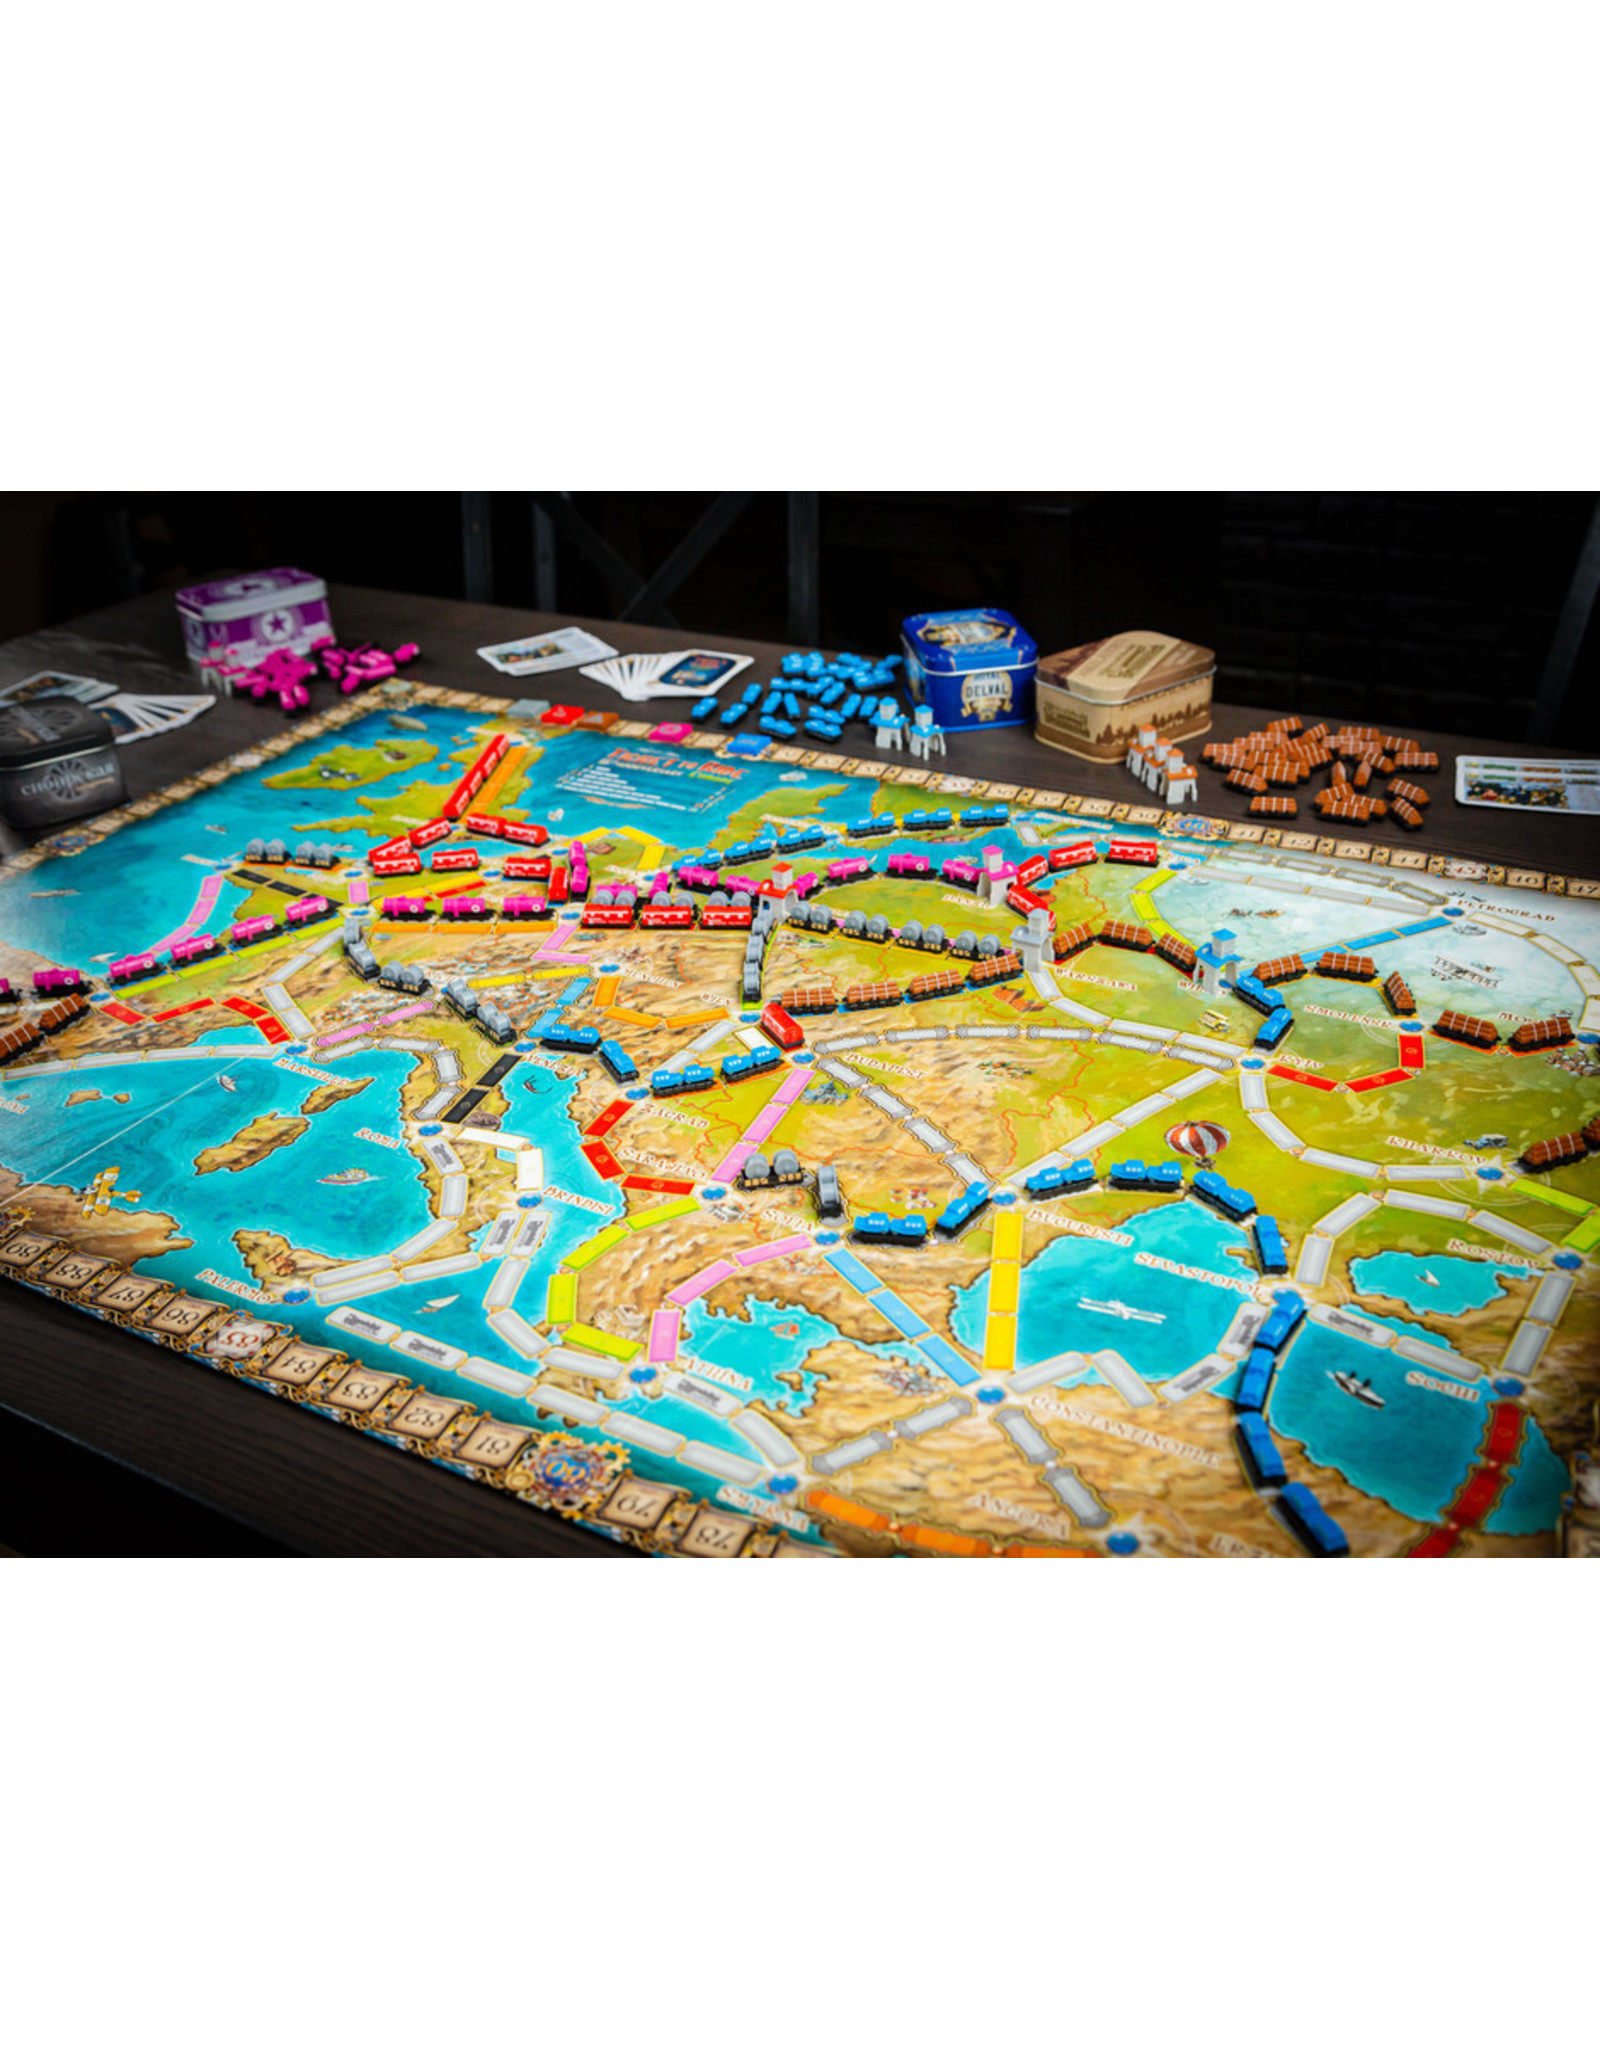 Days of Wonder Ticket to Ride: Europe 15th Anniversary Edition